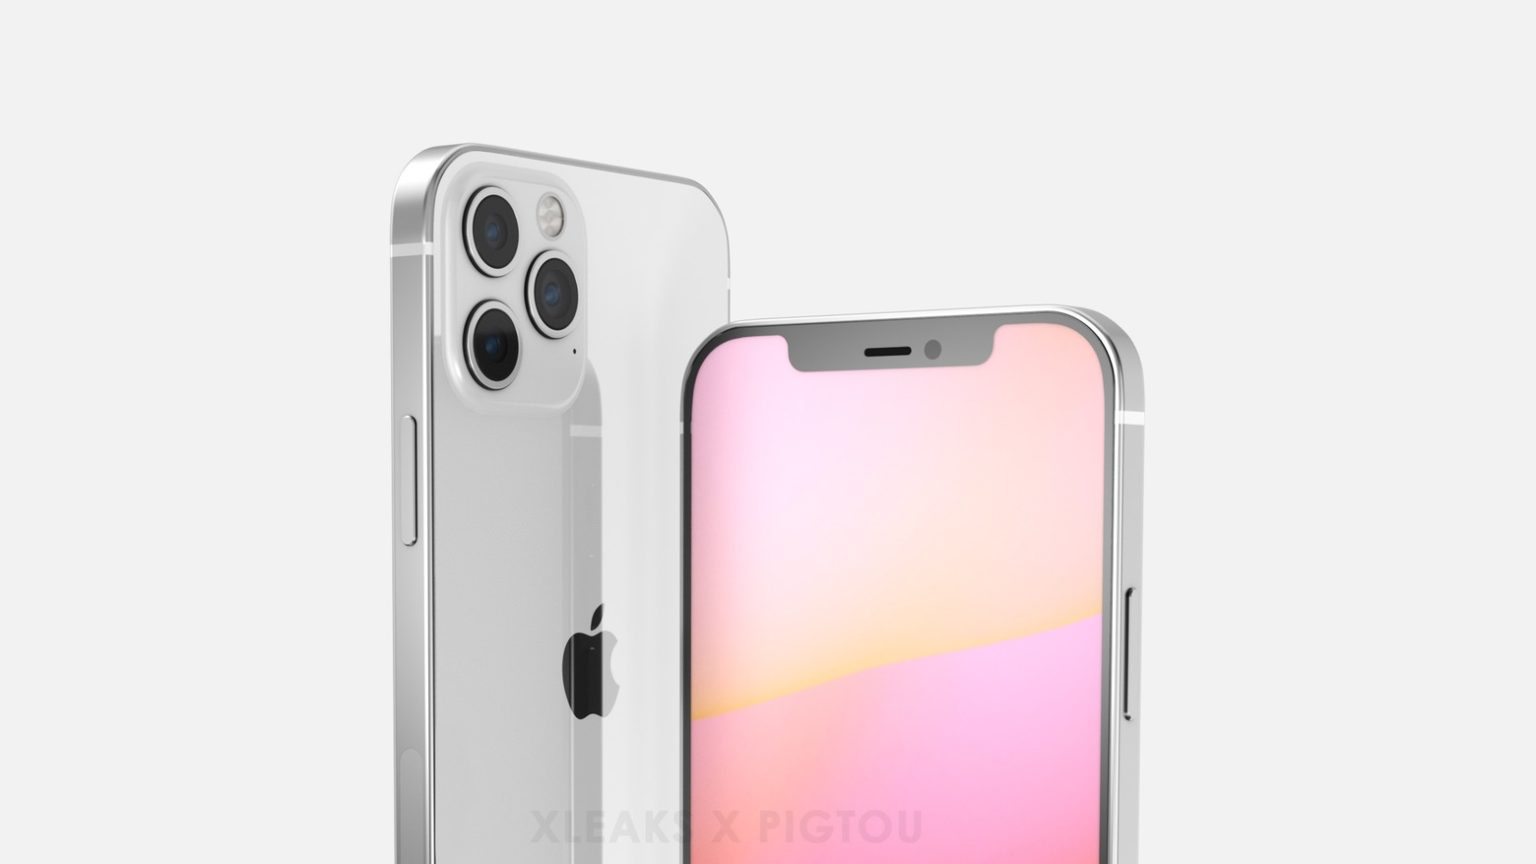 Render shows iPhone 12 camera with three lenses